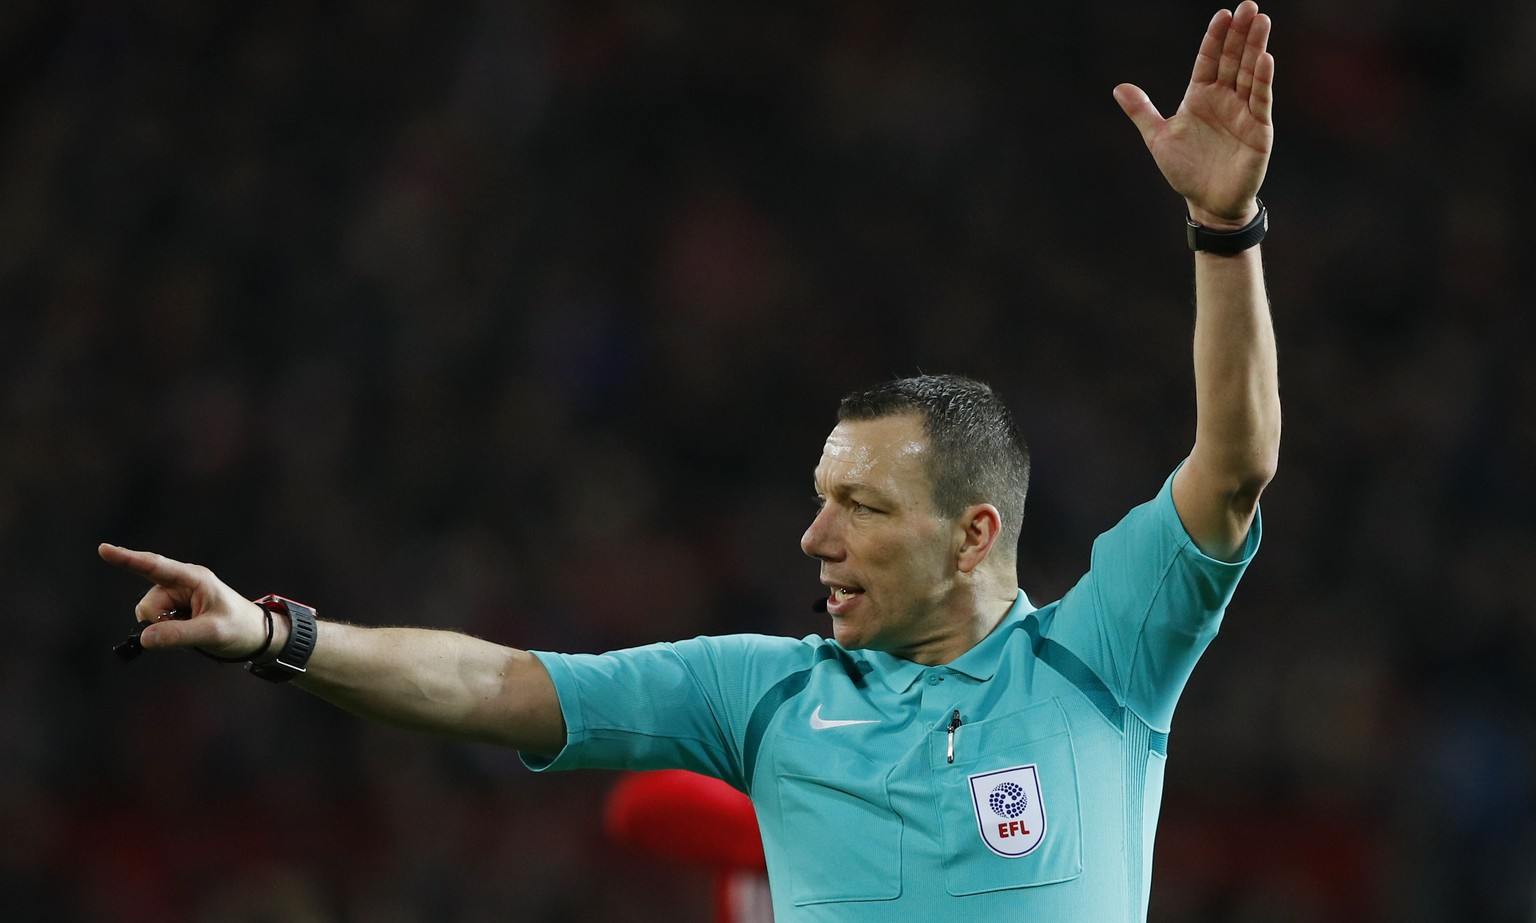 Britain Football Soccer - Manchester United v Hull City - EFL Cup Semi Final First Leg - Old Trafford - 10/1/17 Referee Kevin Friend Reuters / Phil Noble Livepic EDITORIAL USE ONLY. No use with unauthorized audio, video, data, fixture lists, club/league logos or